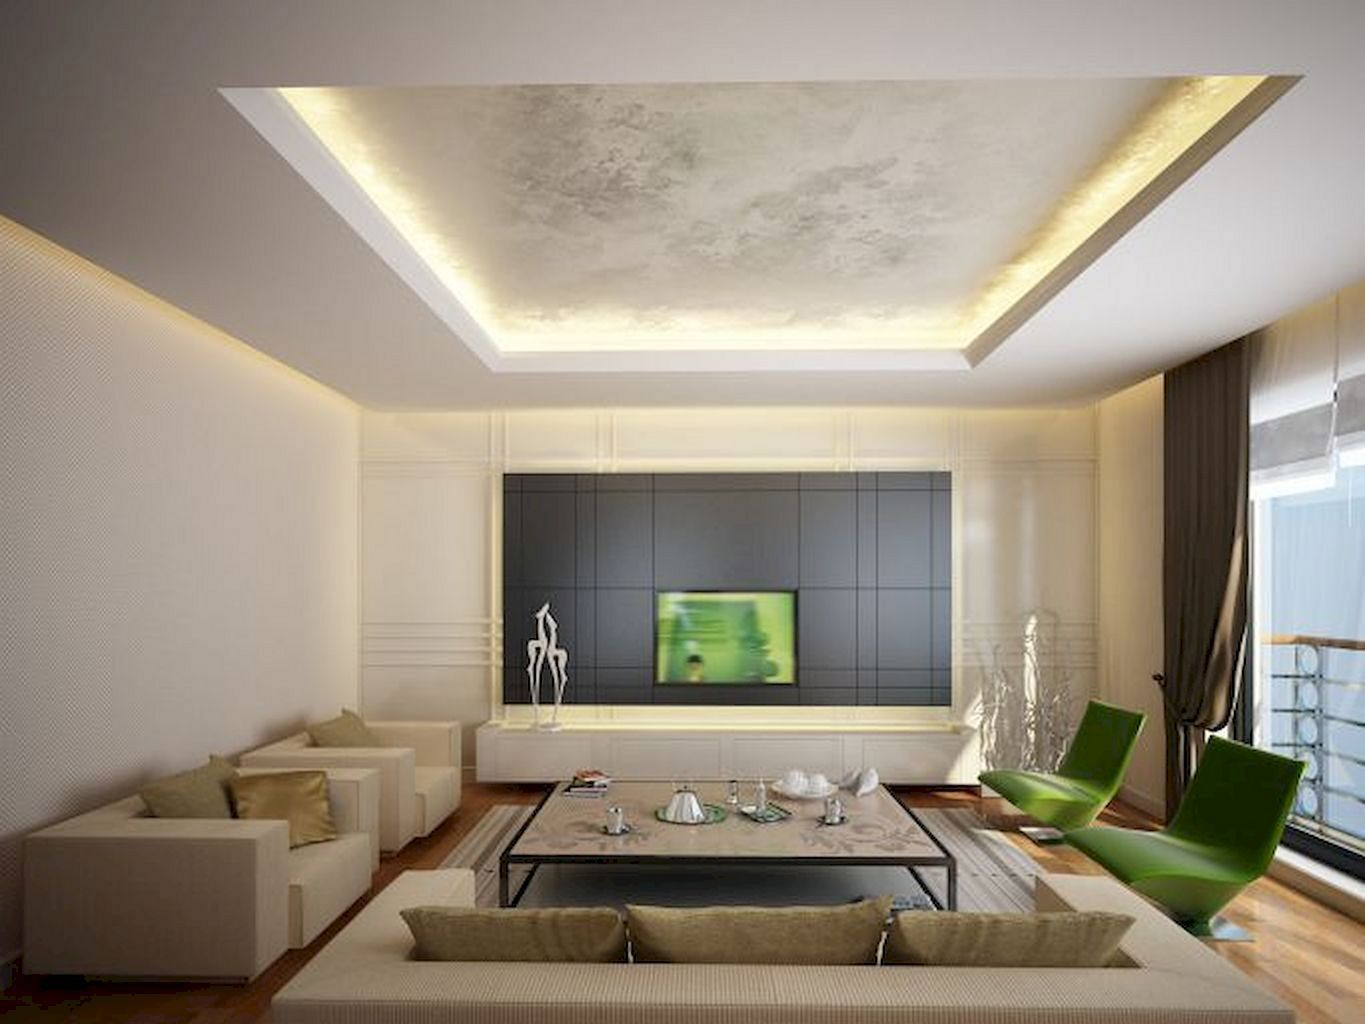 20 Amazing Living Room Decoration With Modern Ceiling Ideas In 2020 Ceiling Design Living Room Ceiling Design Modern Living Room Design Modern